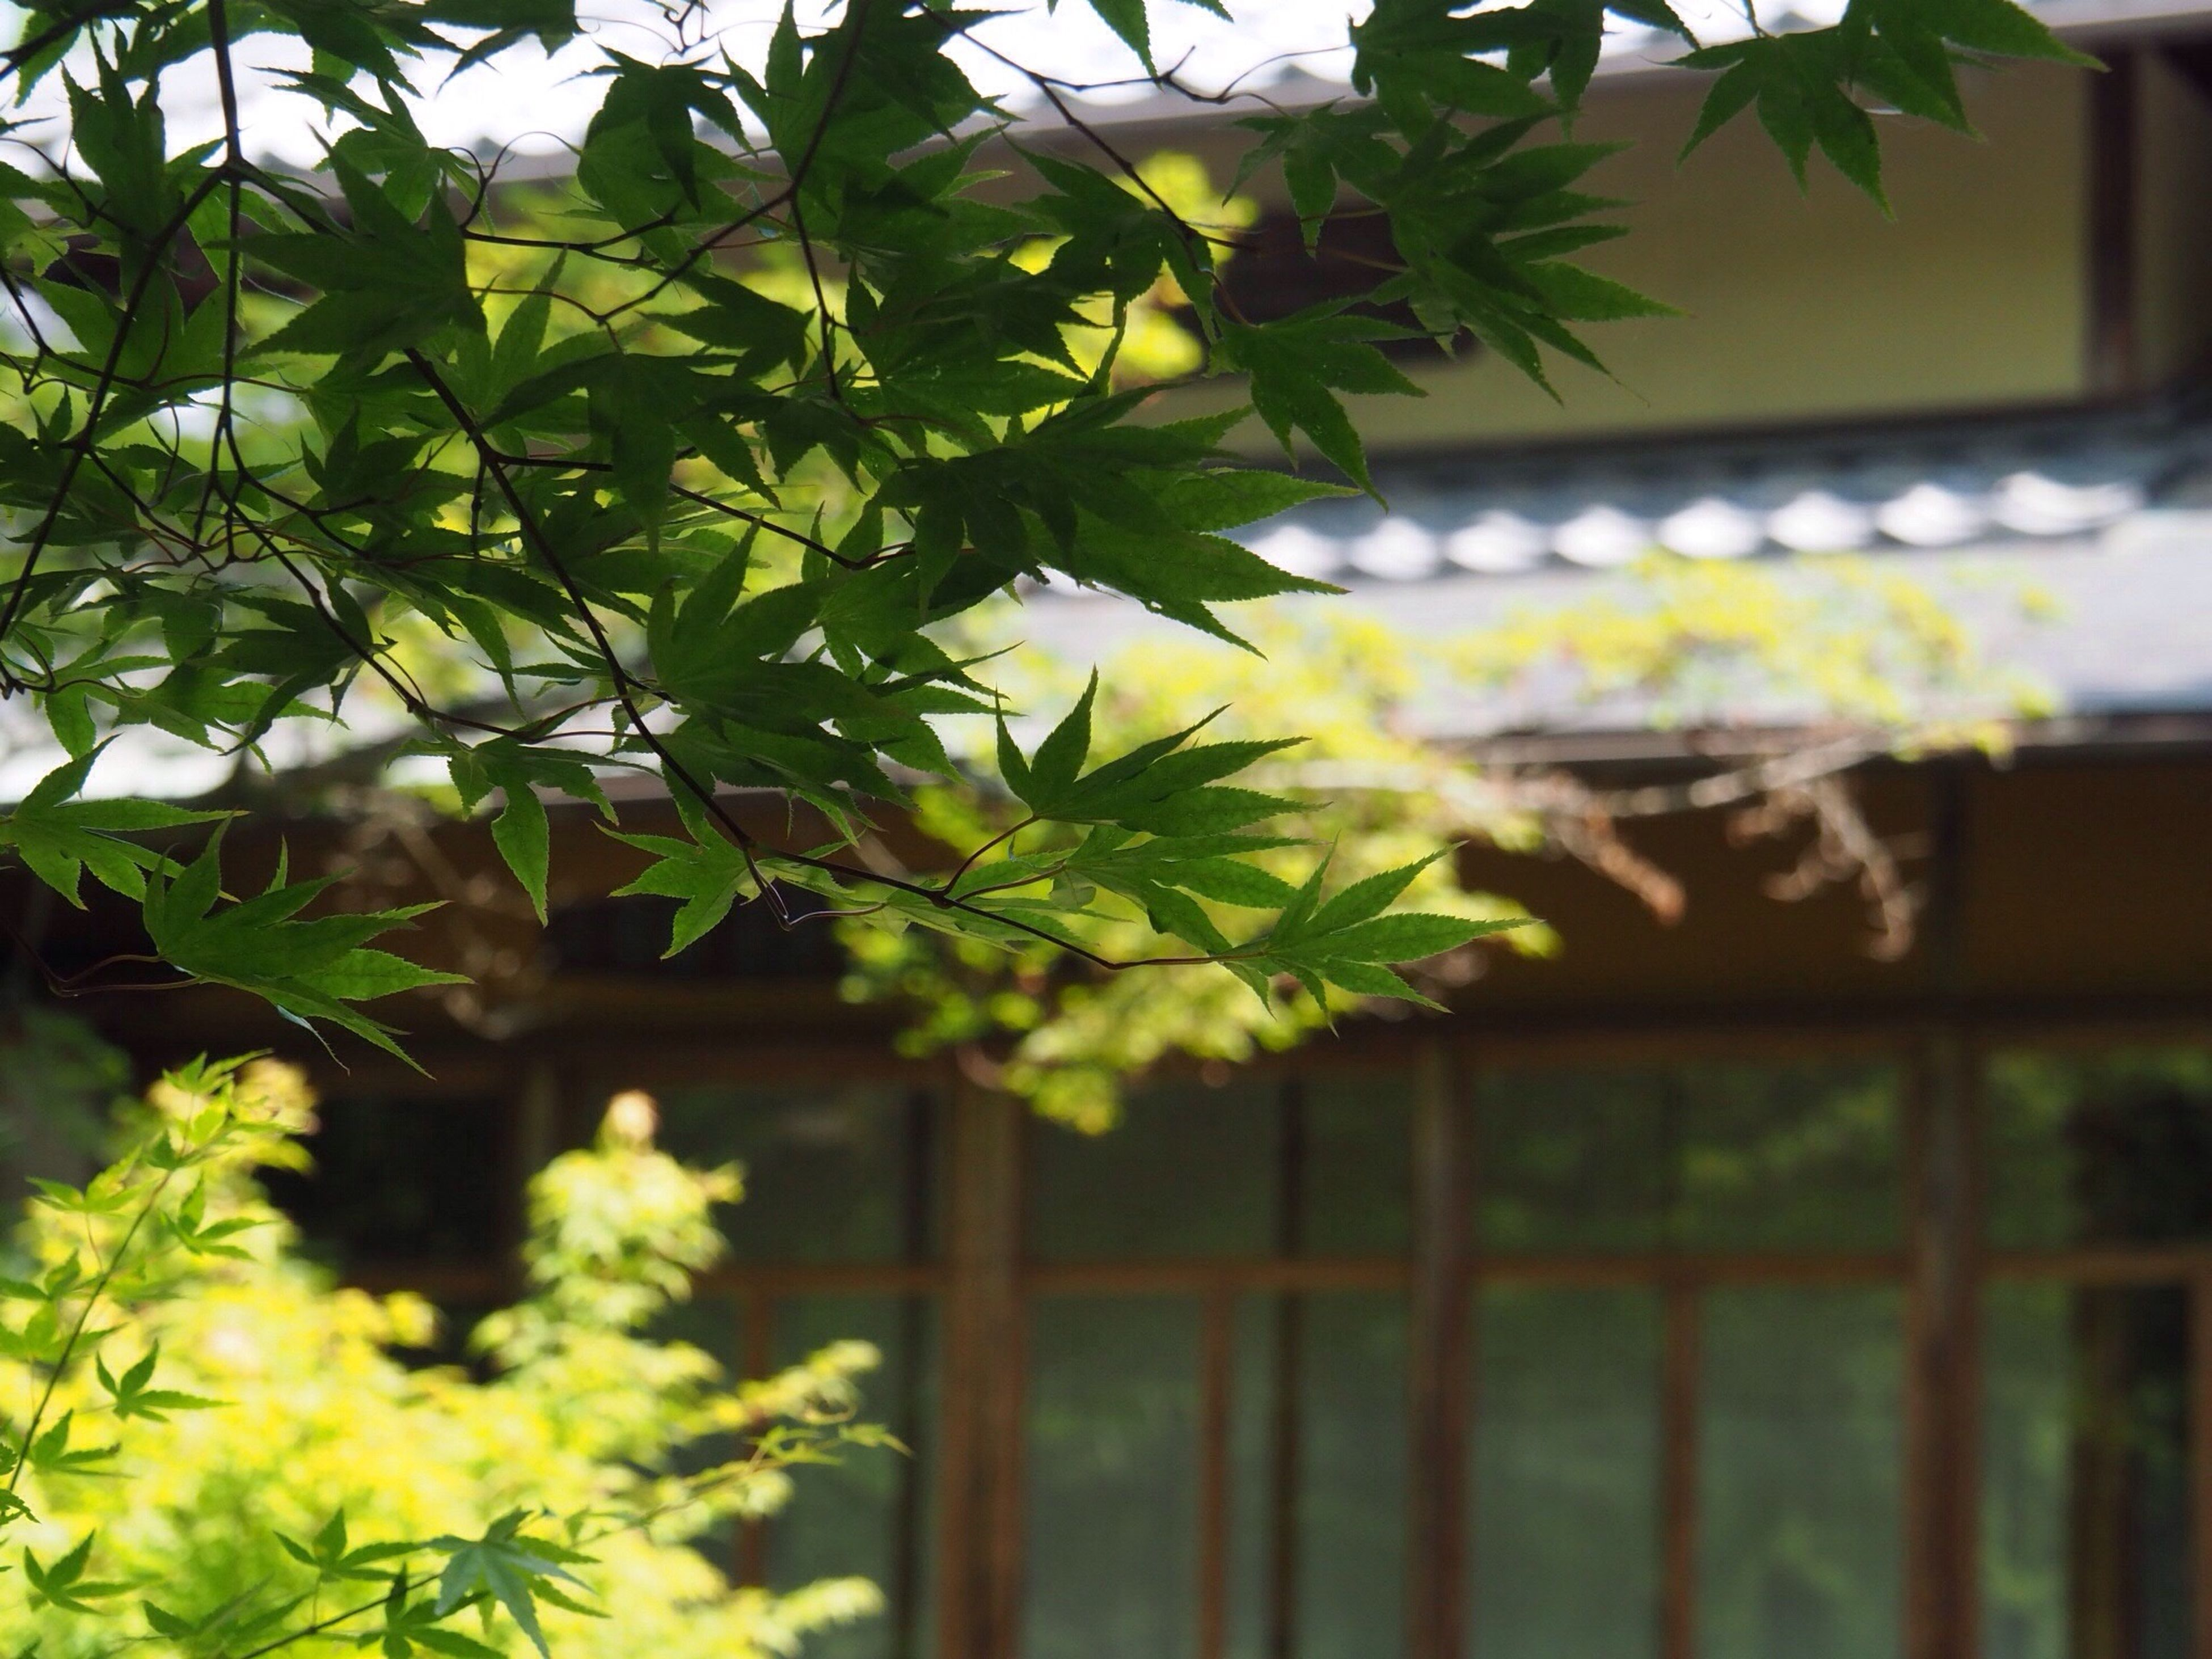 Kyoto Japan Arashiyama Hogonin Temple Garden Green Architecture Day No People Outdoors Leaf Nature Beauty In Nature Healing Silence Summer Olympus PEN-F 京都 日本 嵐山 宝厳院 獅子吼の庭 借景回遊式庭園